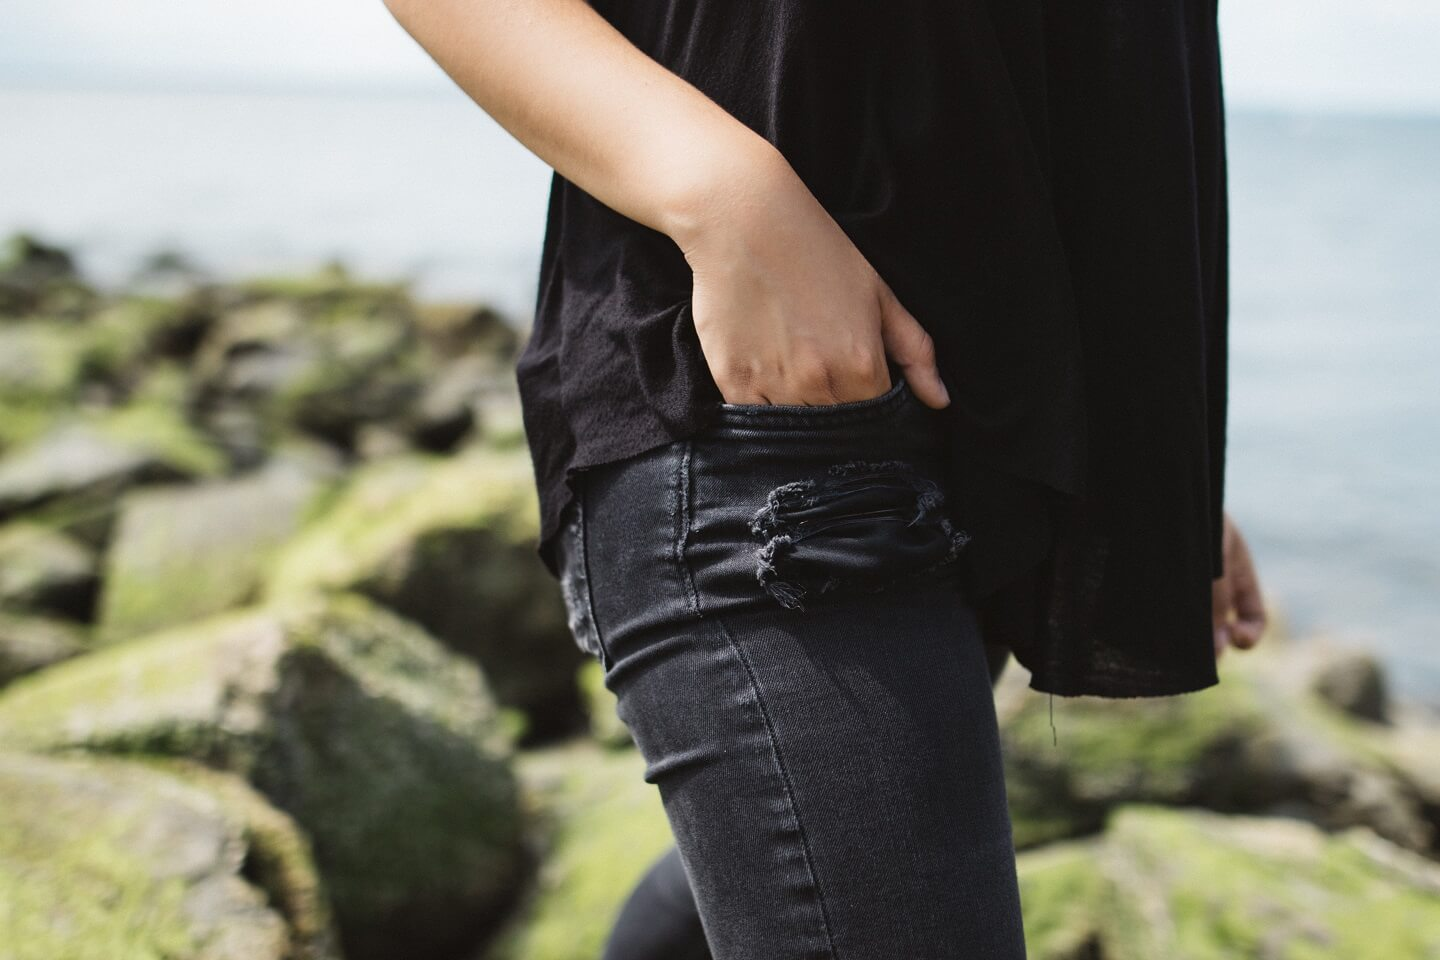 A person walking in black jeans and shirt with a hand in their pocket.